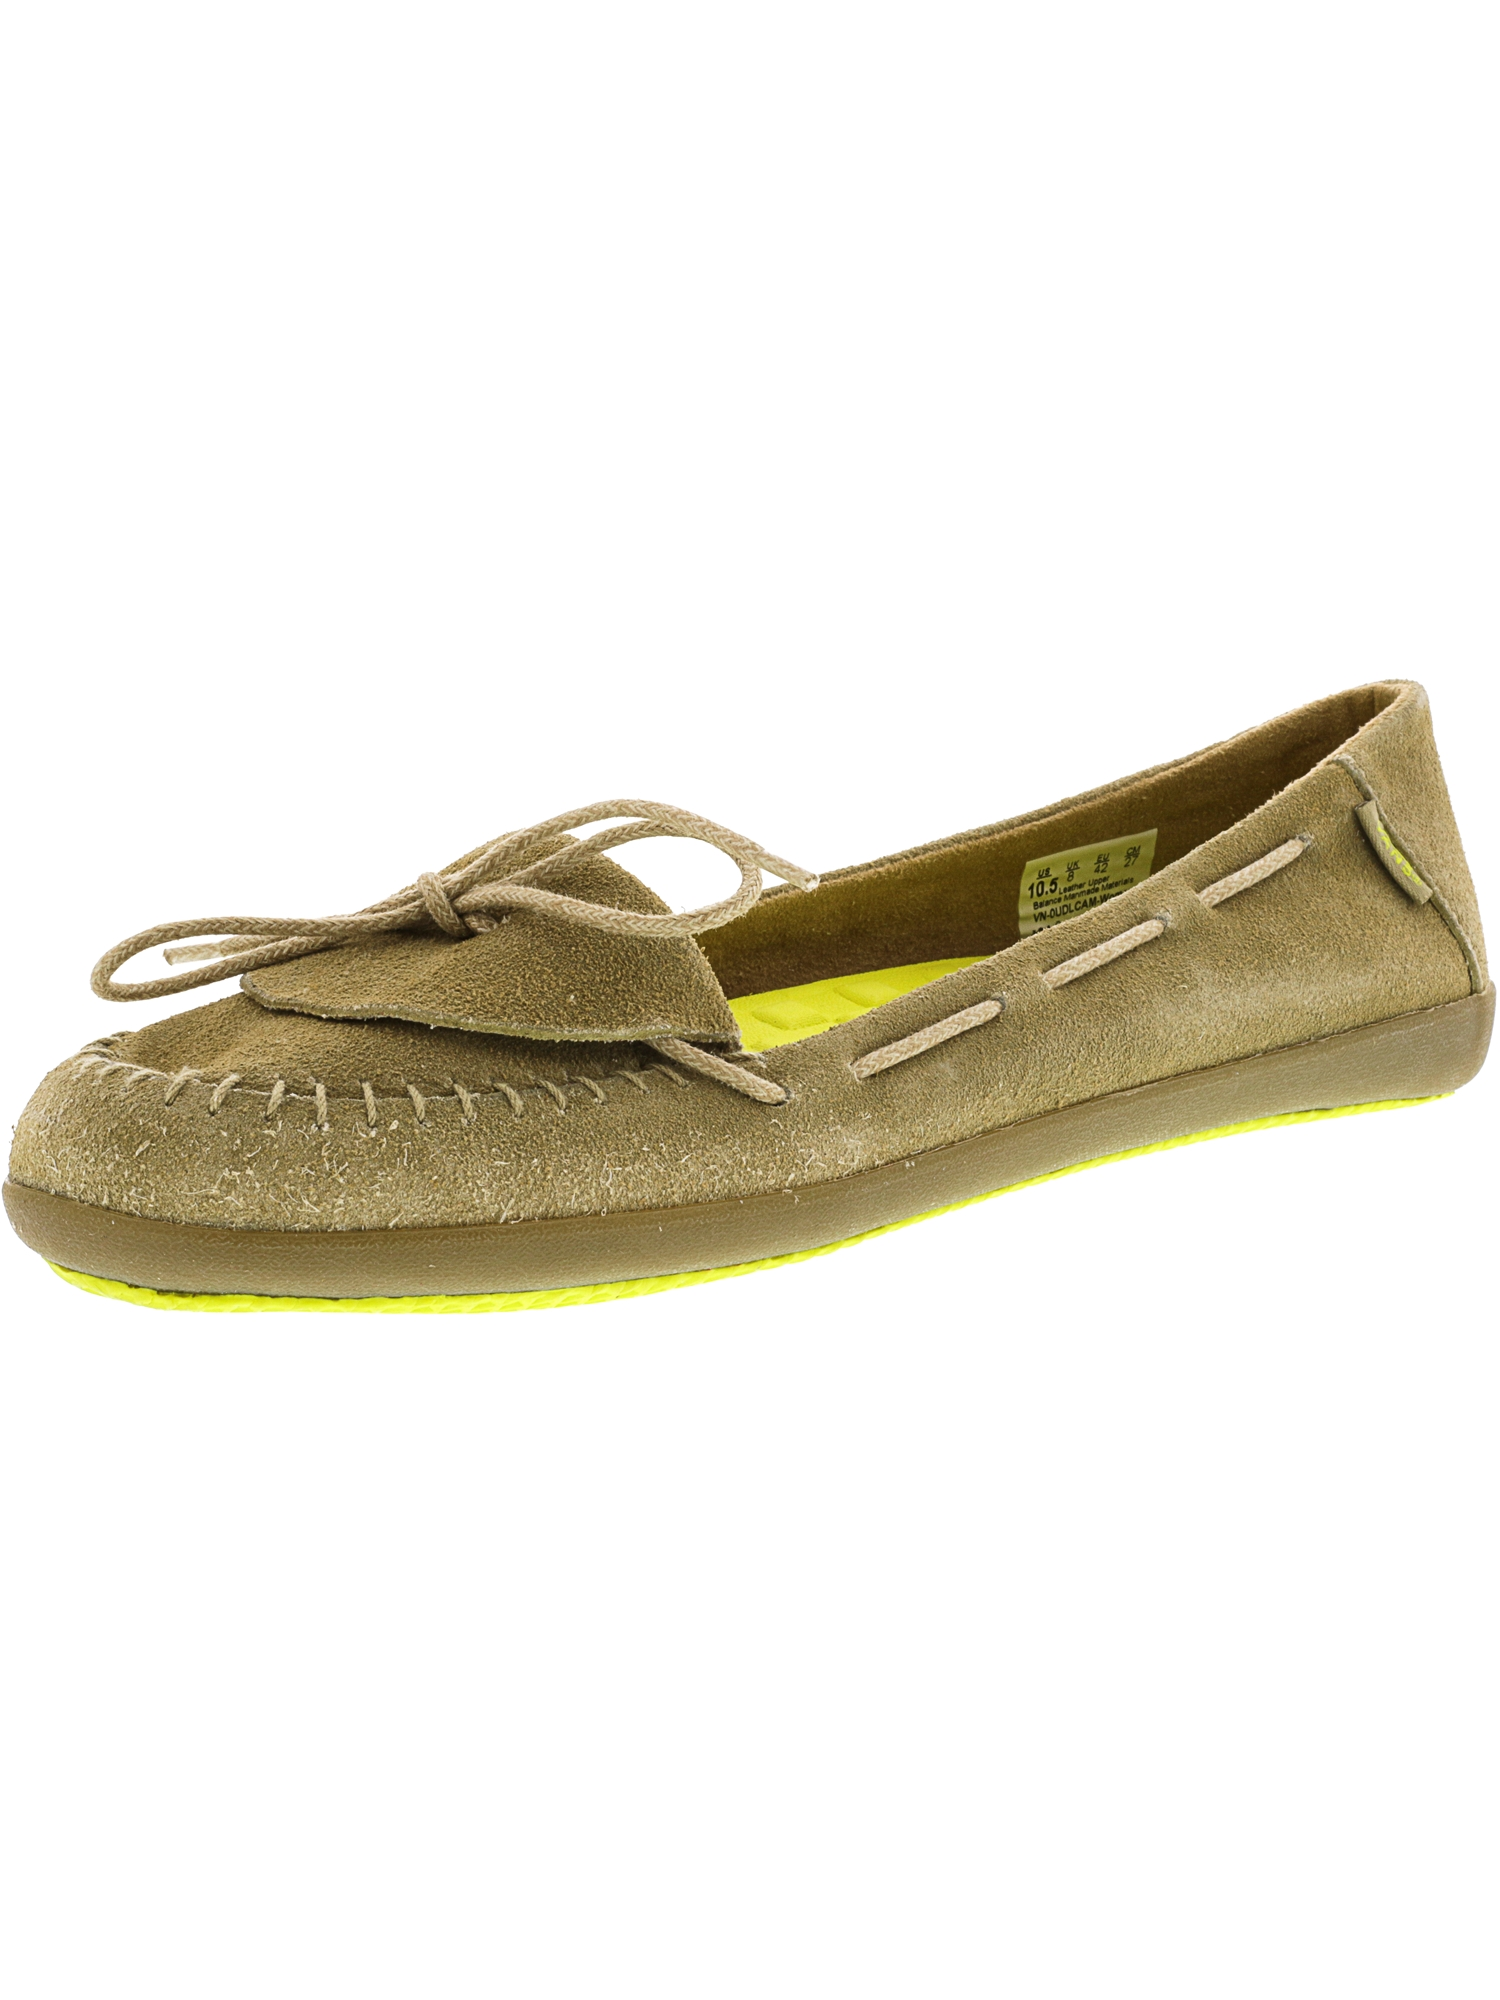 Vans Women's Alpaca Camel Ankle-High Leather Slip-On Shoes - 10.5M